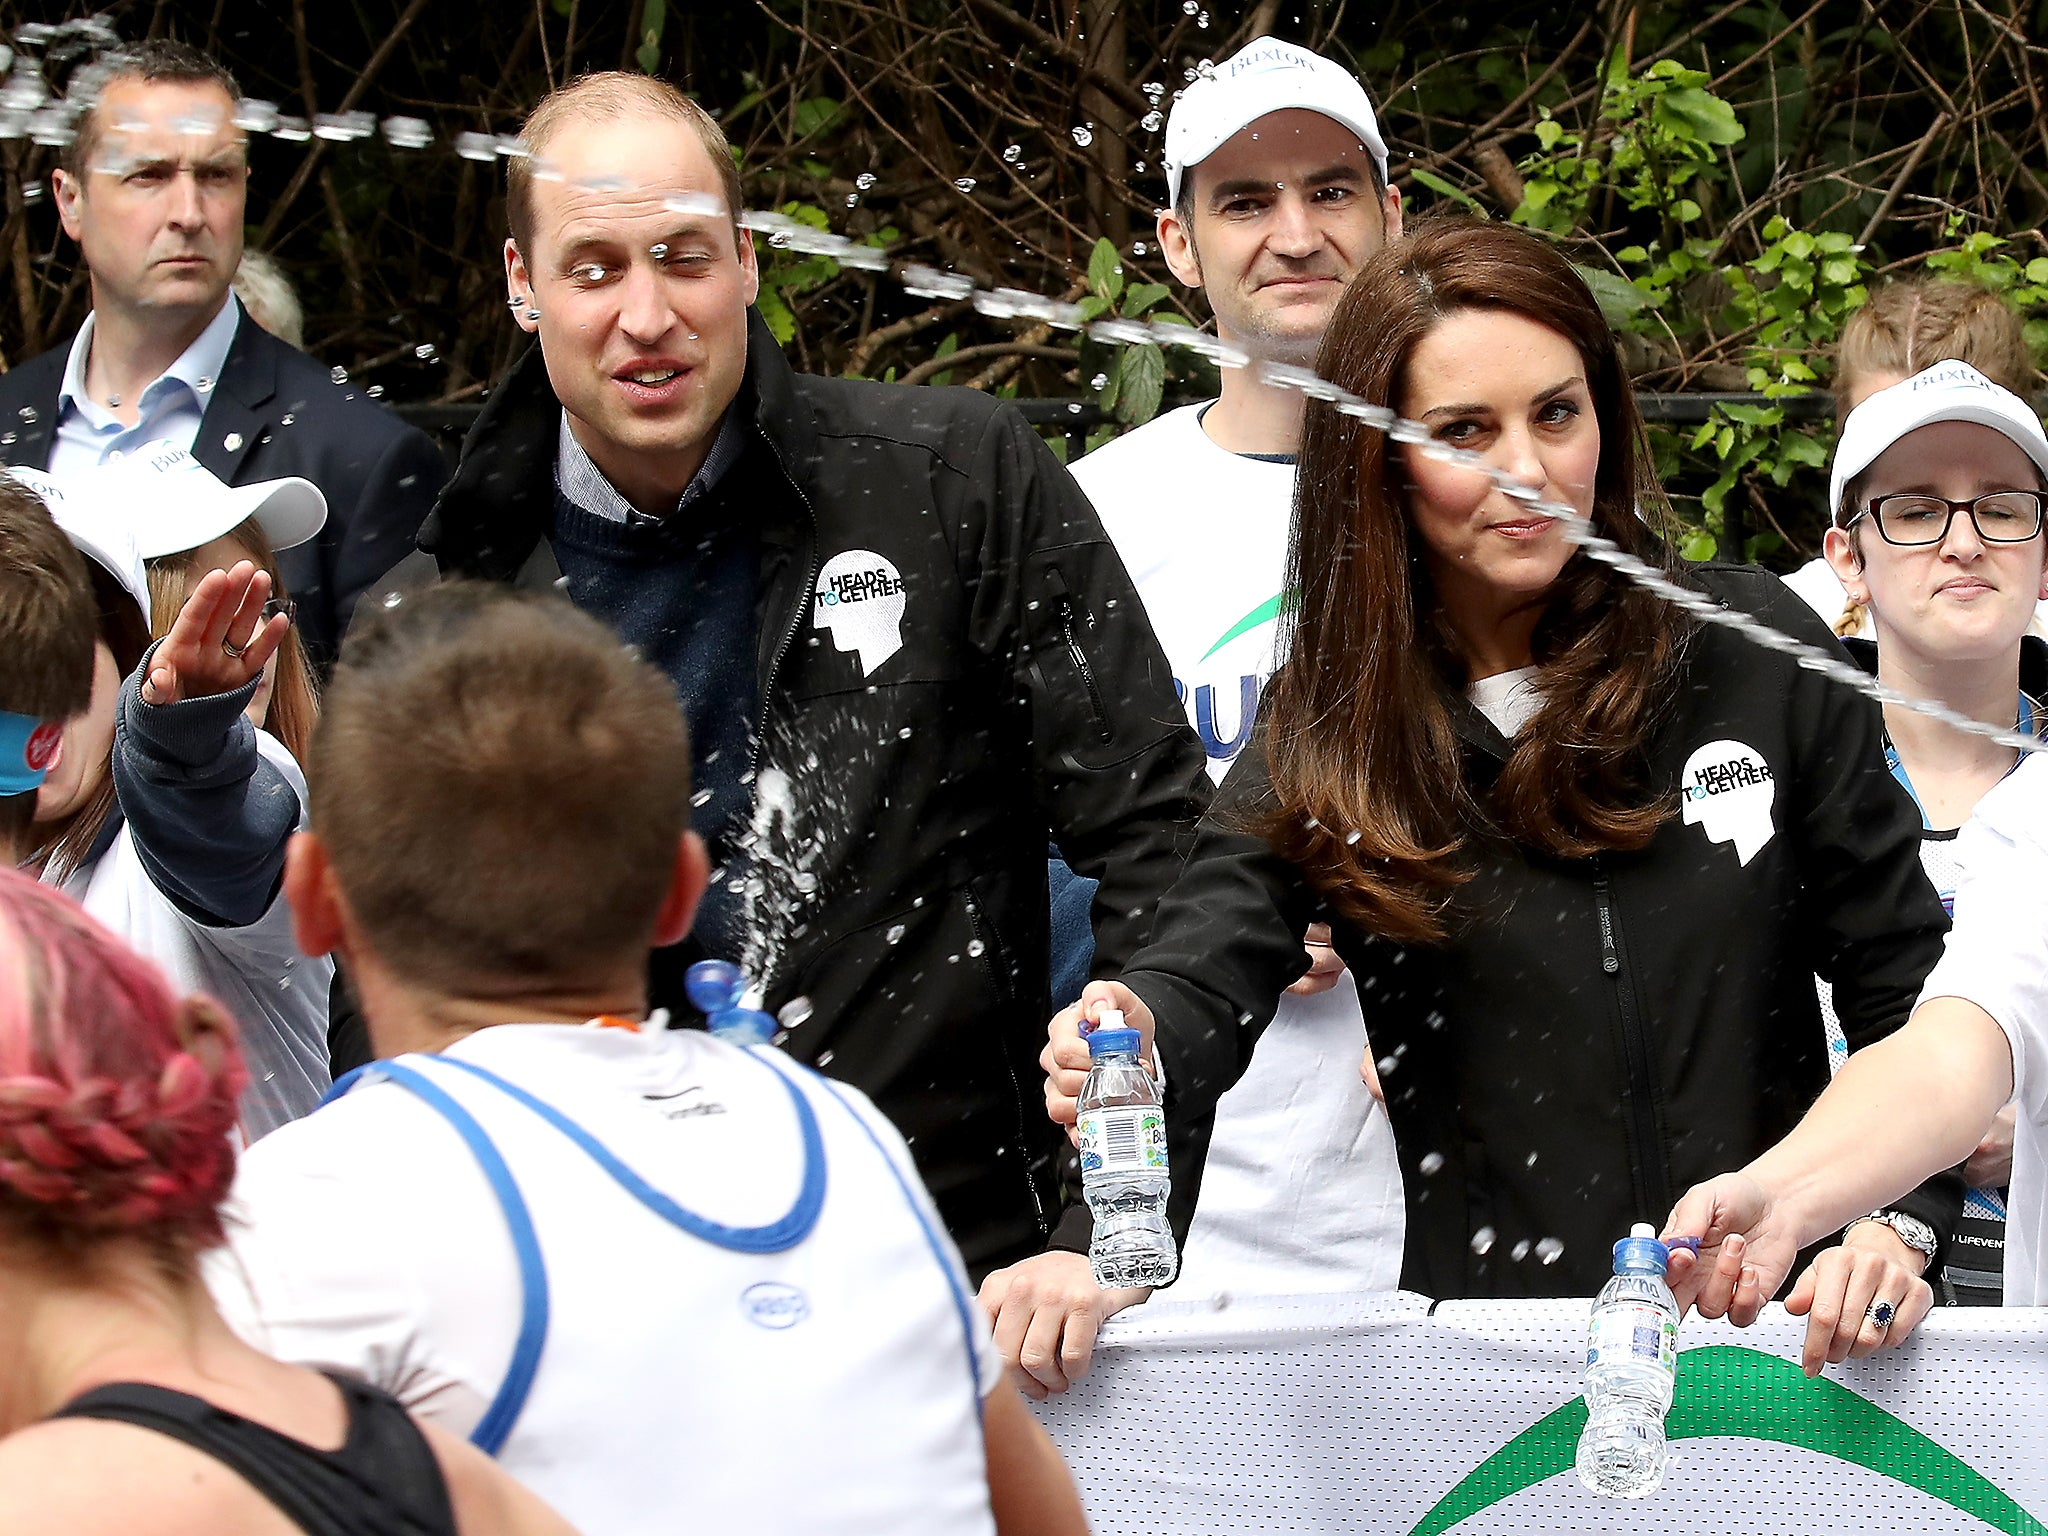 Prince william and duchess of cambridge splashed with water by london marathon runner the independent